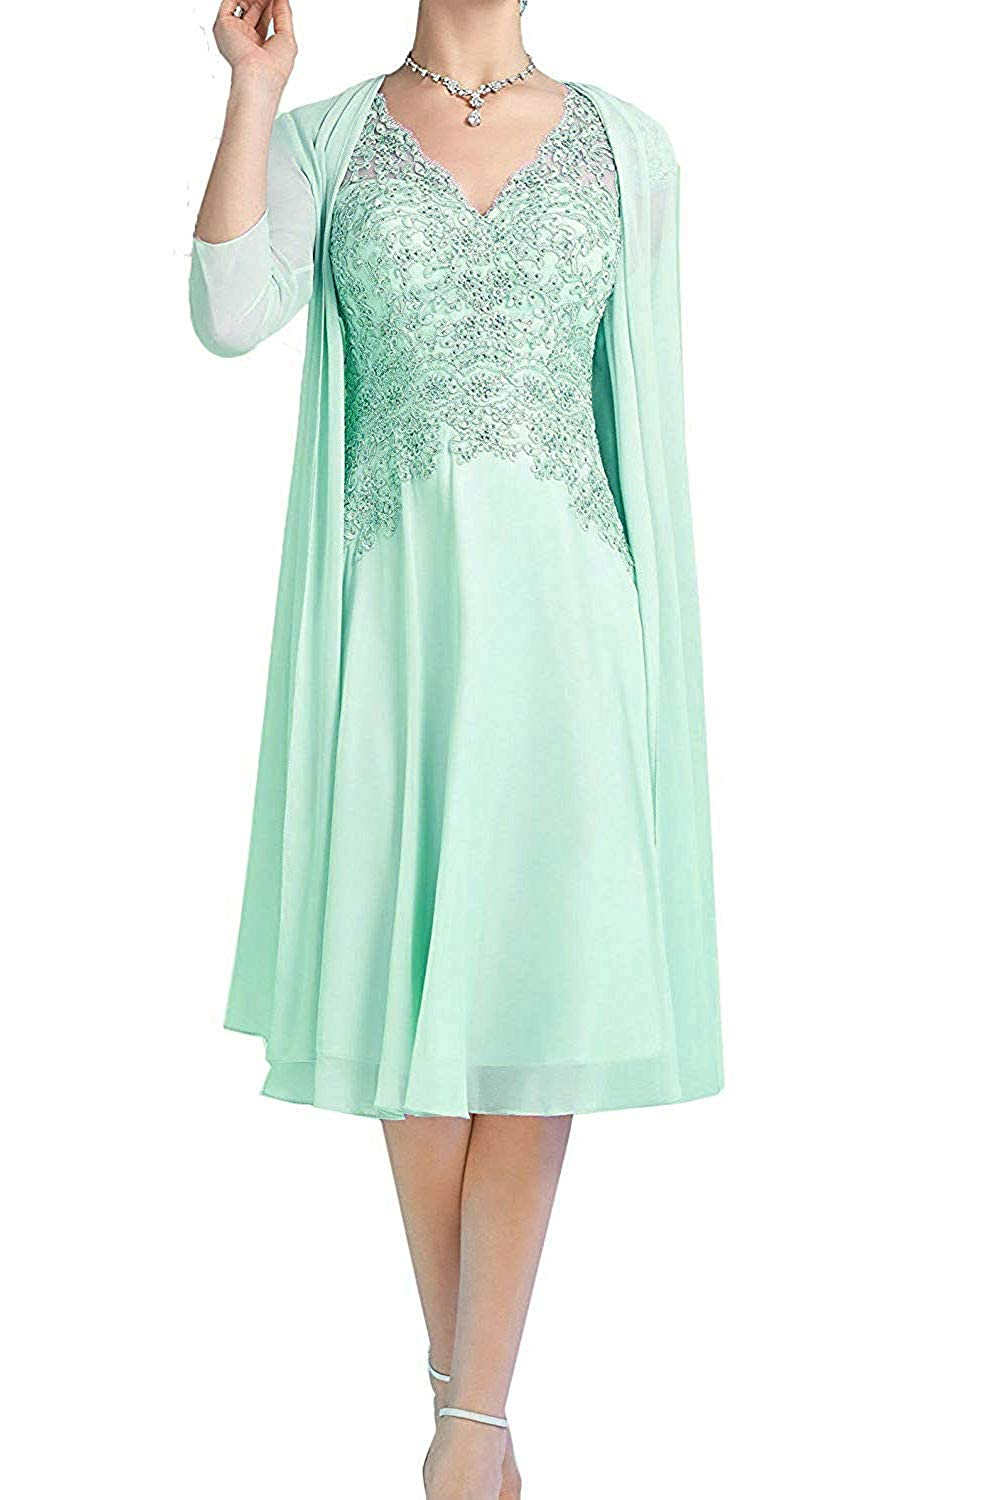 Mint ZLQQ Pink Aline Short Dress V Neck with 3 4 Sleeves Jacket for Mother of The Bride